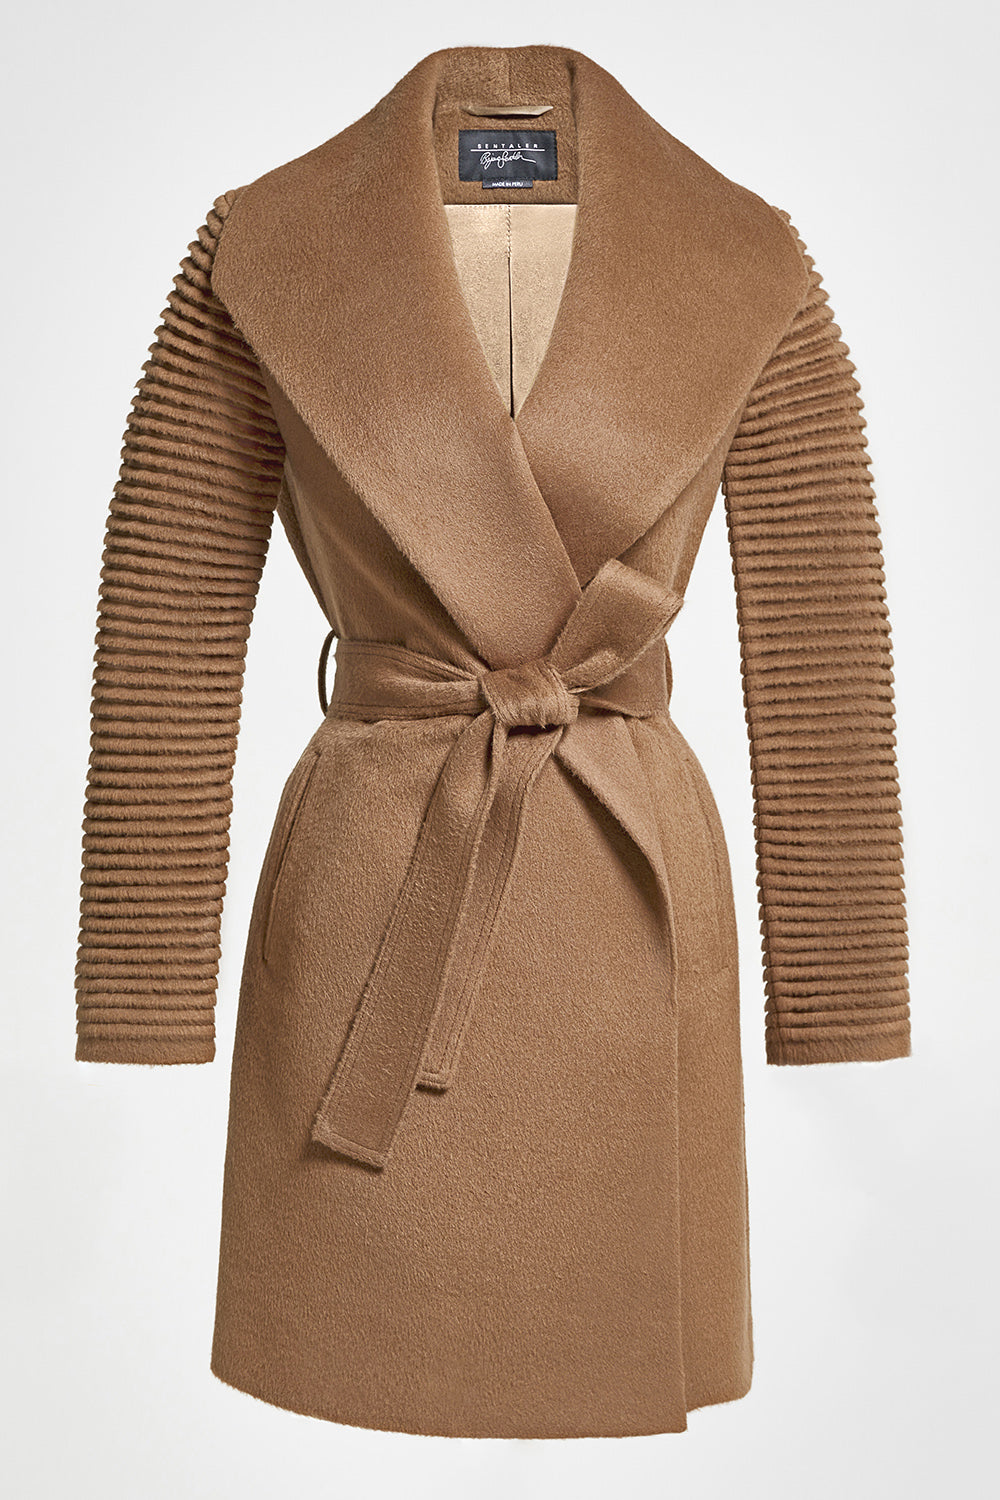 Sentaler Mid Length Shawl Collar Wrap Coat with Ribbed Sleeves featured in Baby Alpaca and available in Dark Camel. Seen off model.